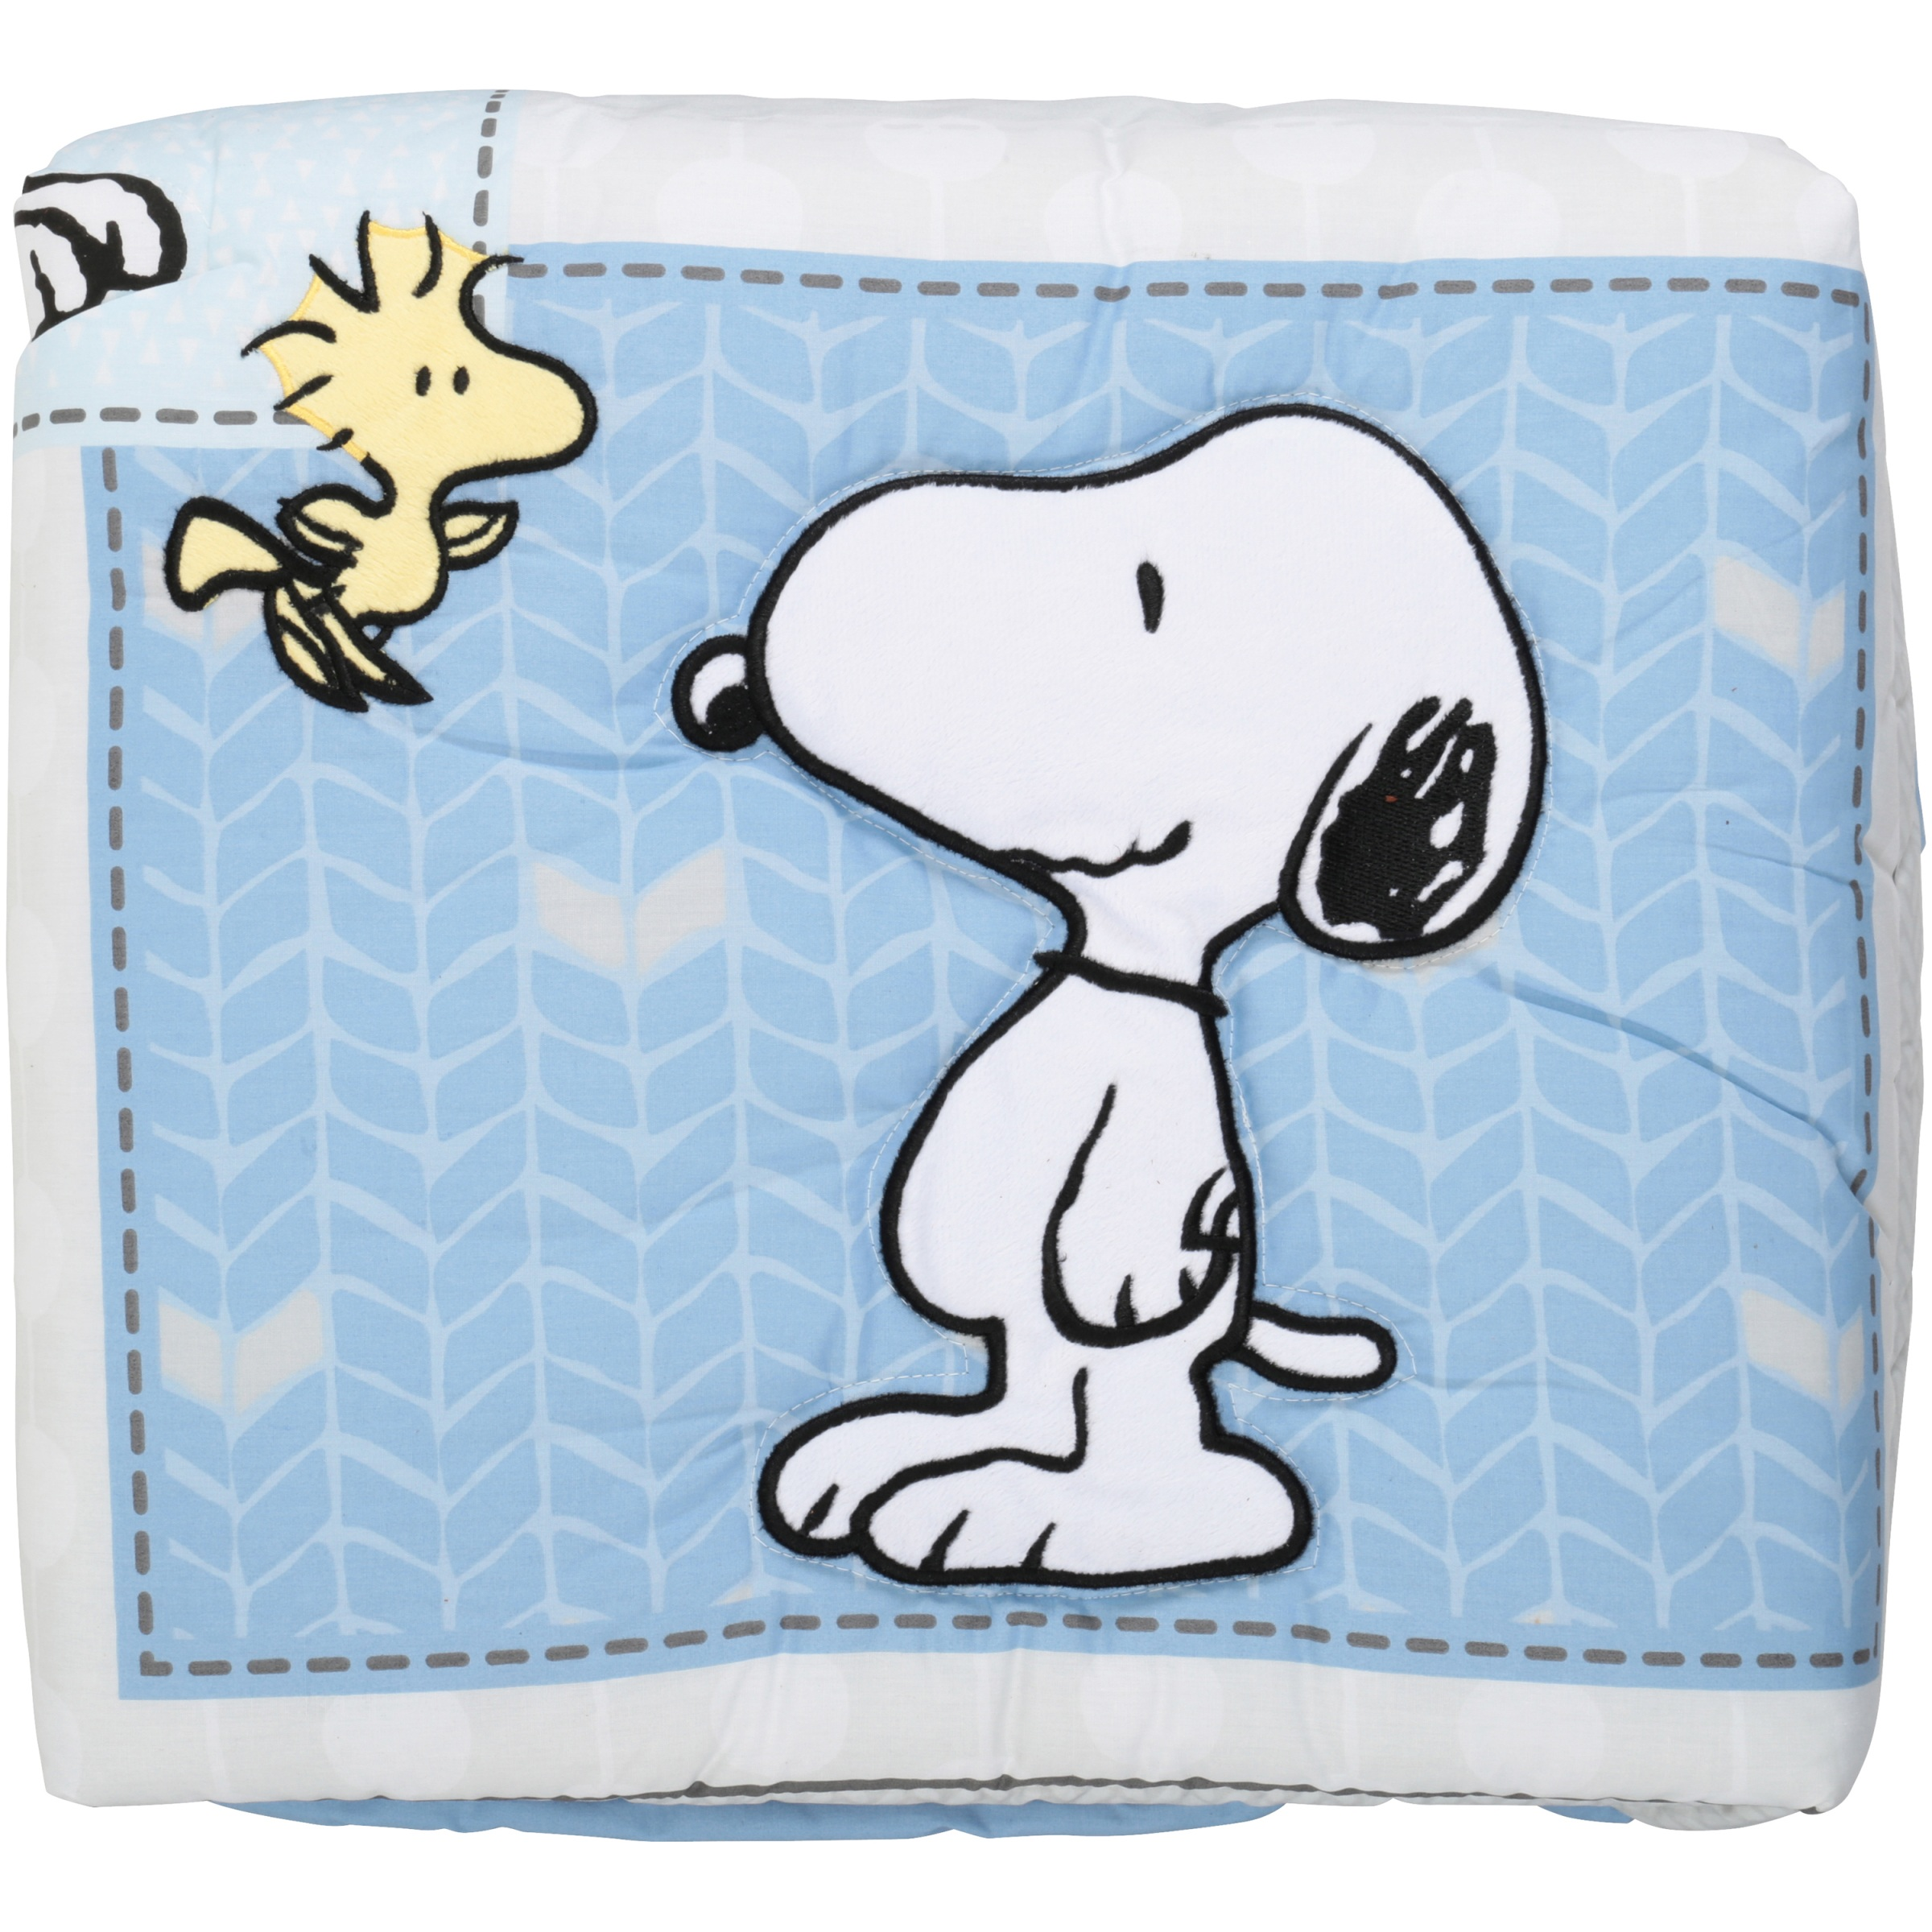 Bedtime Originals Peanuts Forever Snoopy 3-Piece Crib Bedding Set, Blue/Gray